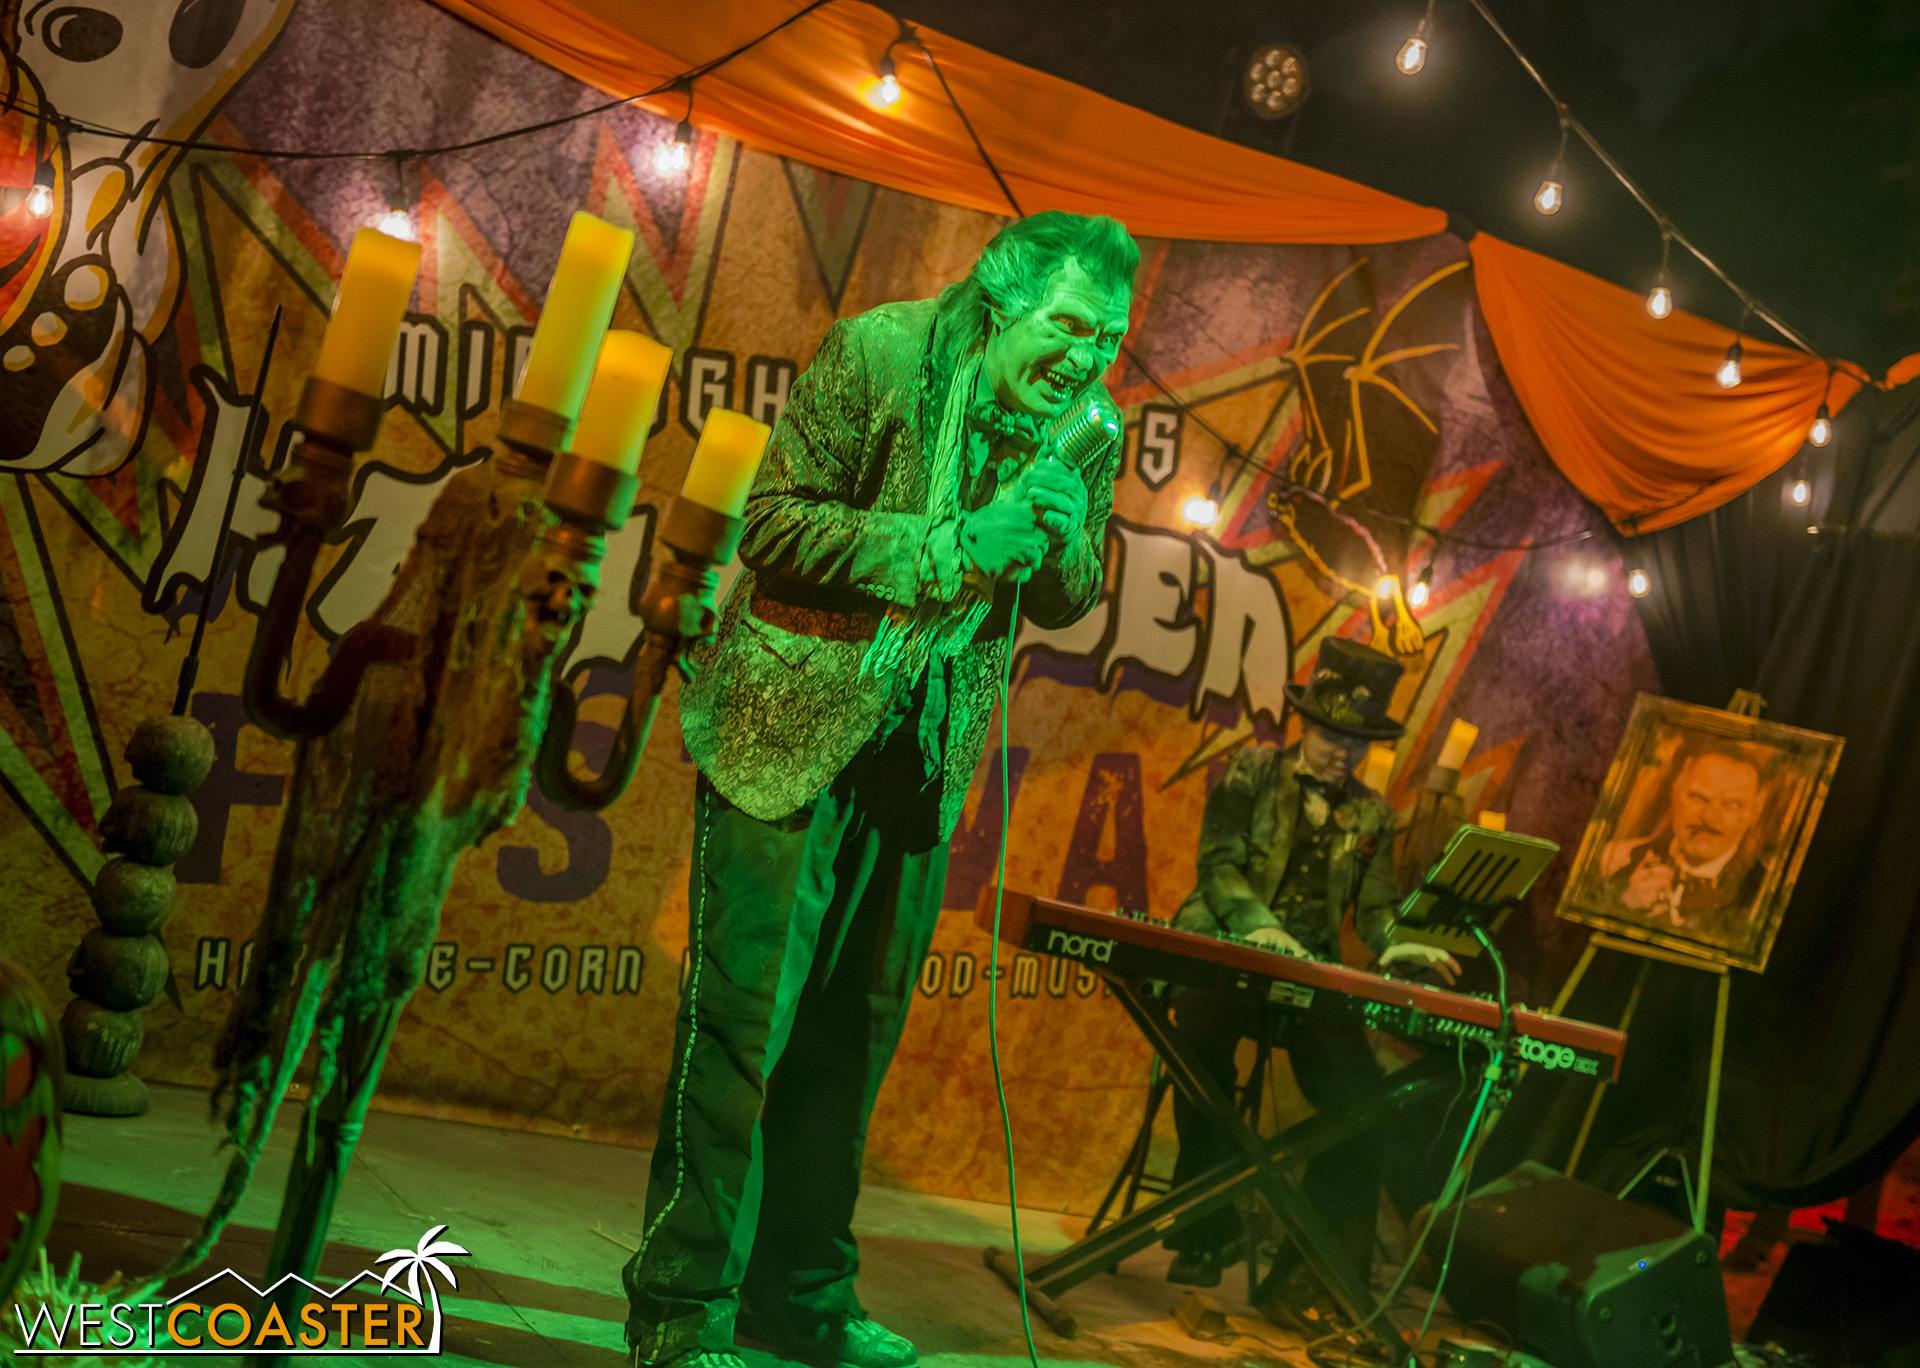 Live, dead-looking entertainment performs all night at the L.A. Haunted Hayride.